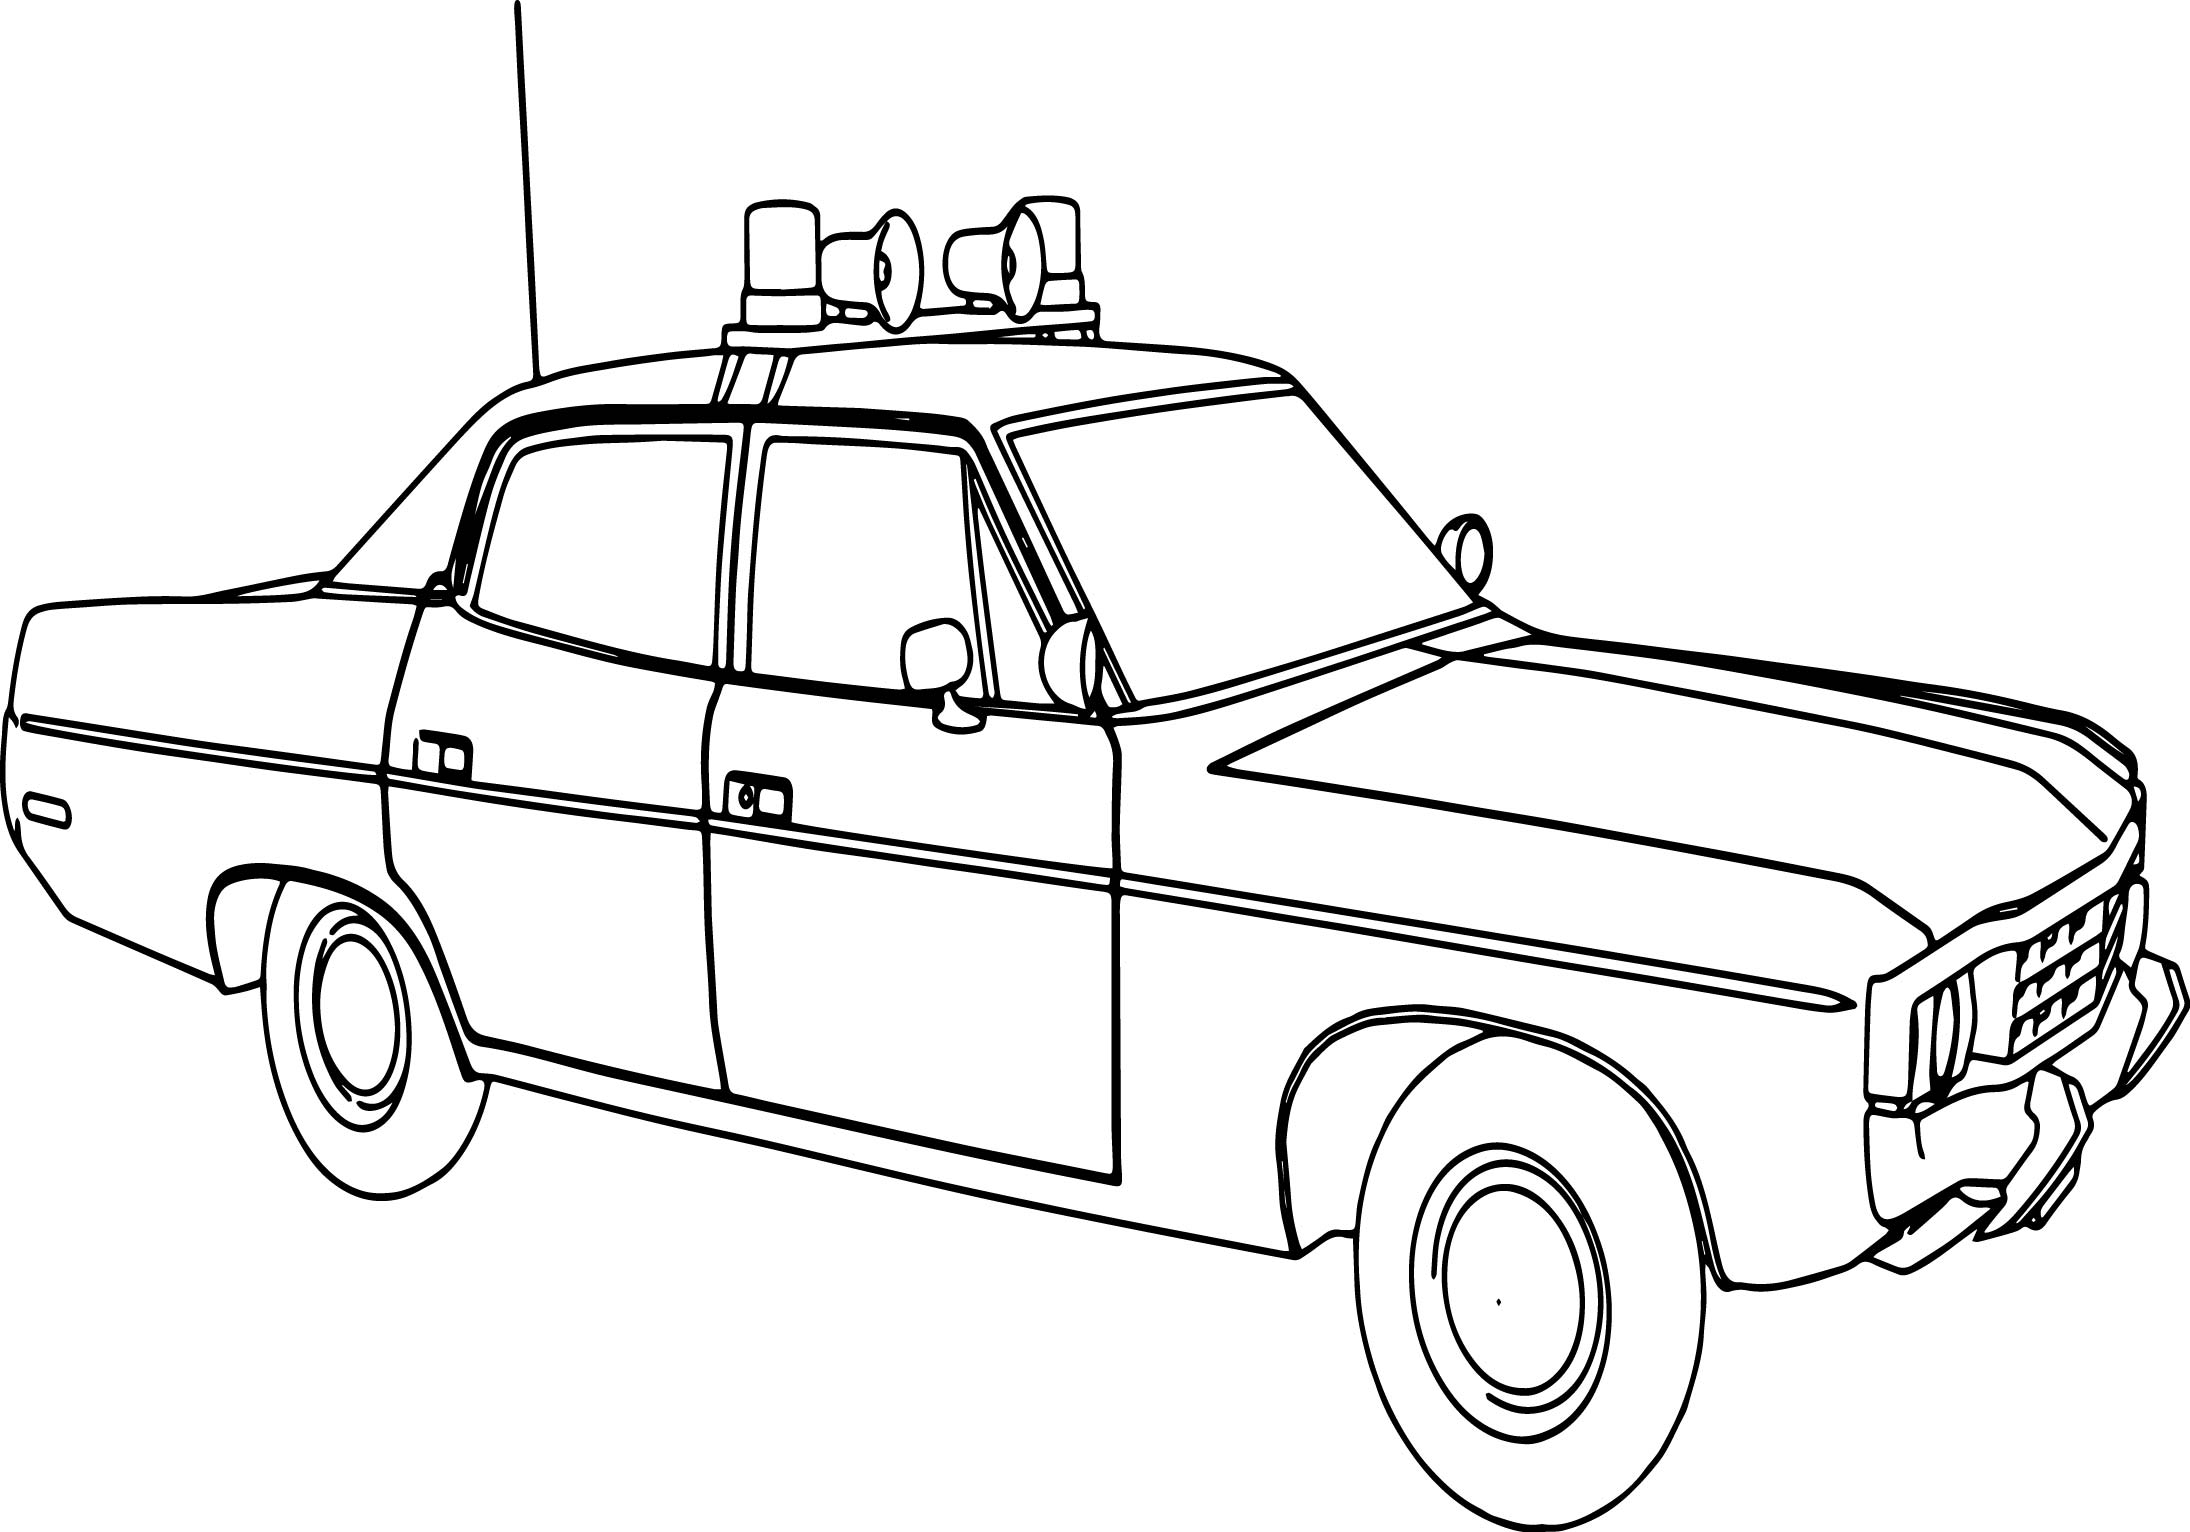 Abc Matador Sheriff Police Car Coloring Page